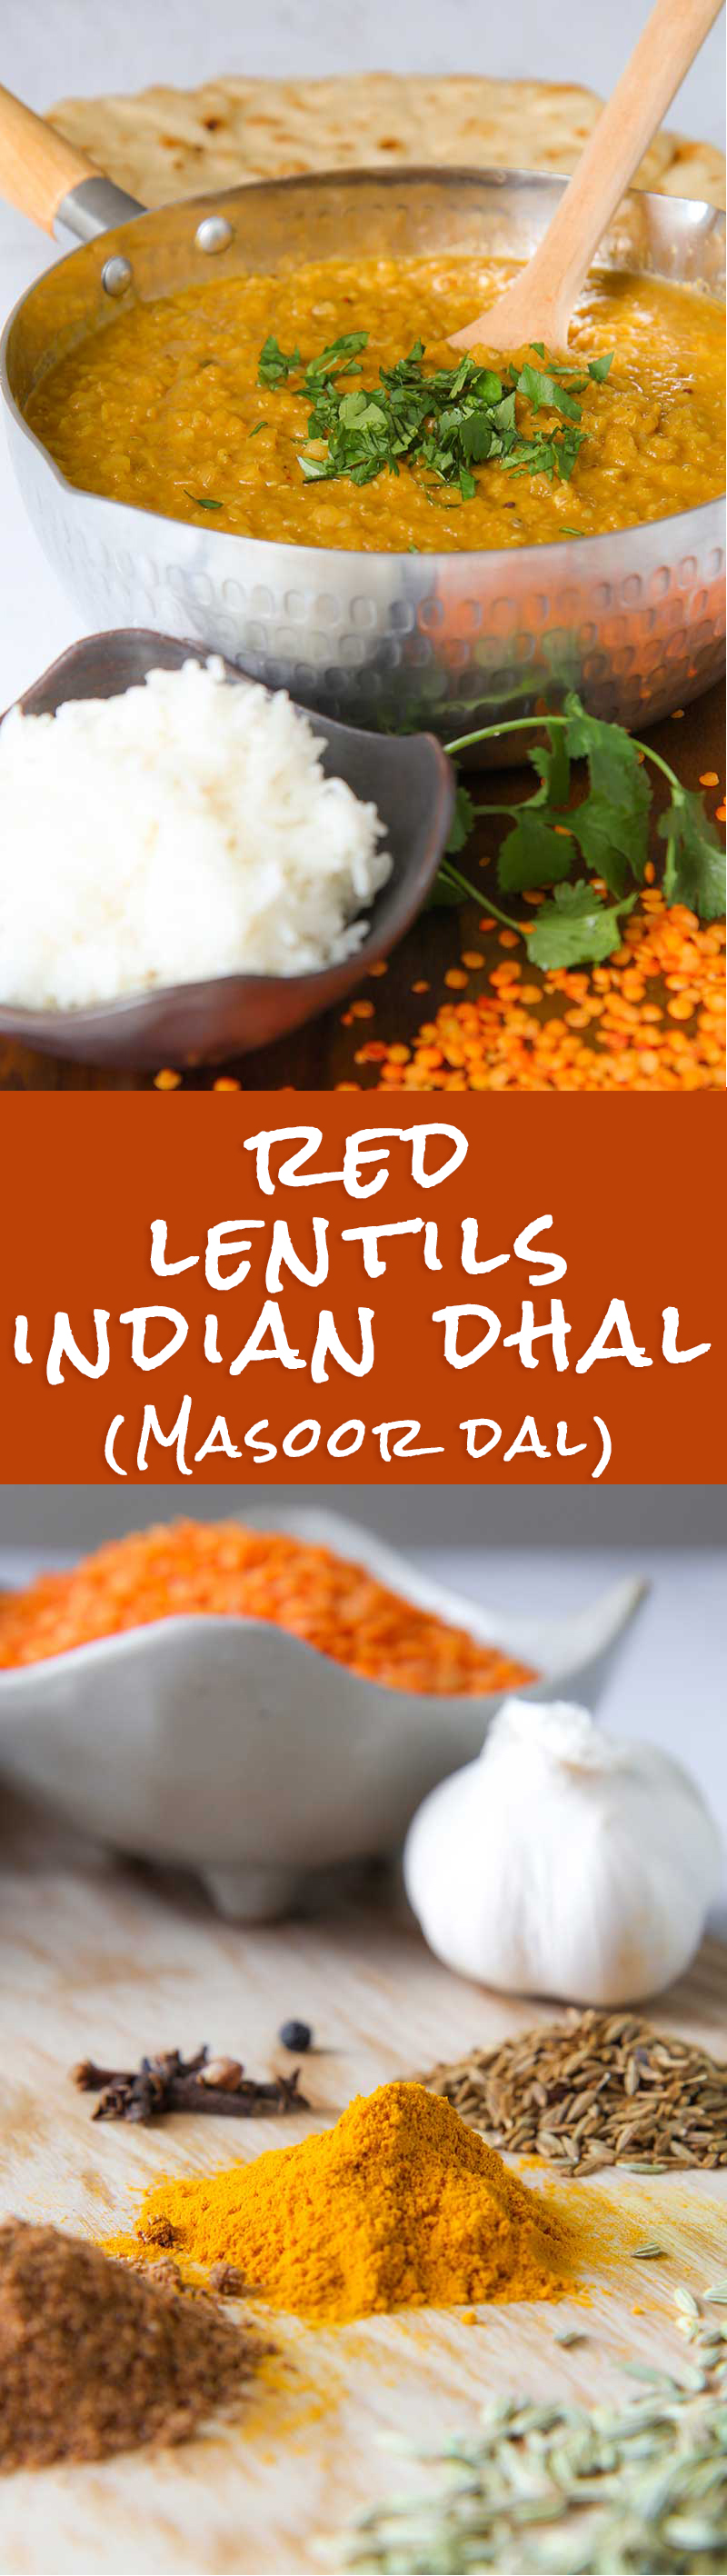 Indian-Style Red Lentils With Ginger (Red Lentil Dal) Recipe ...